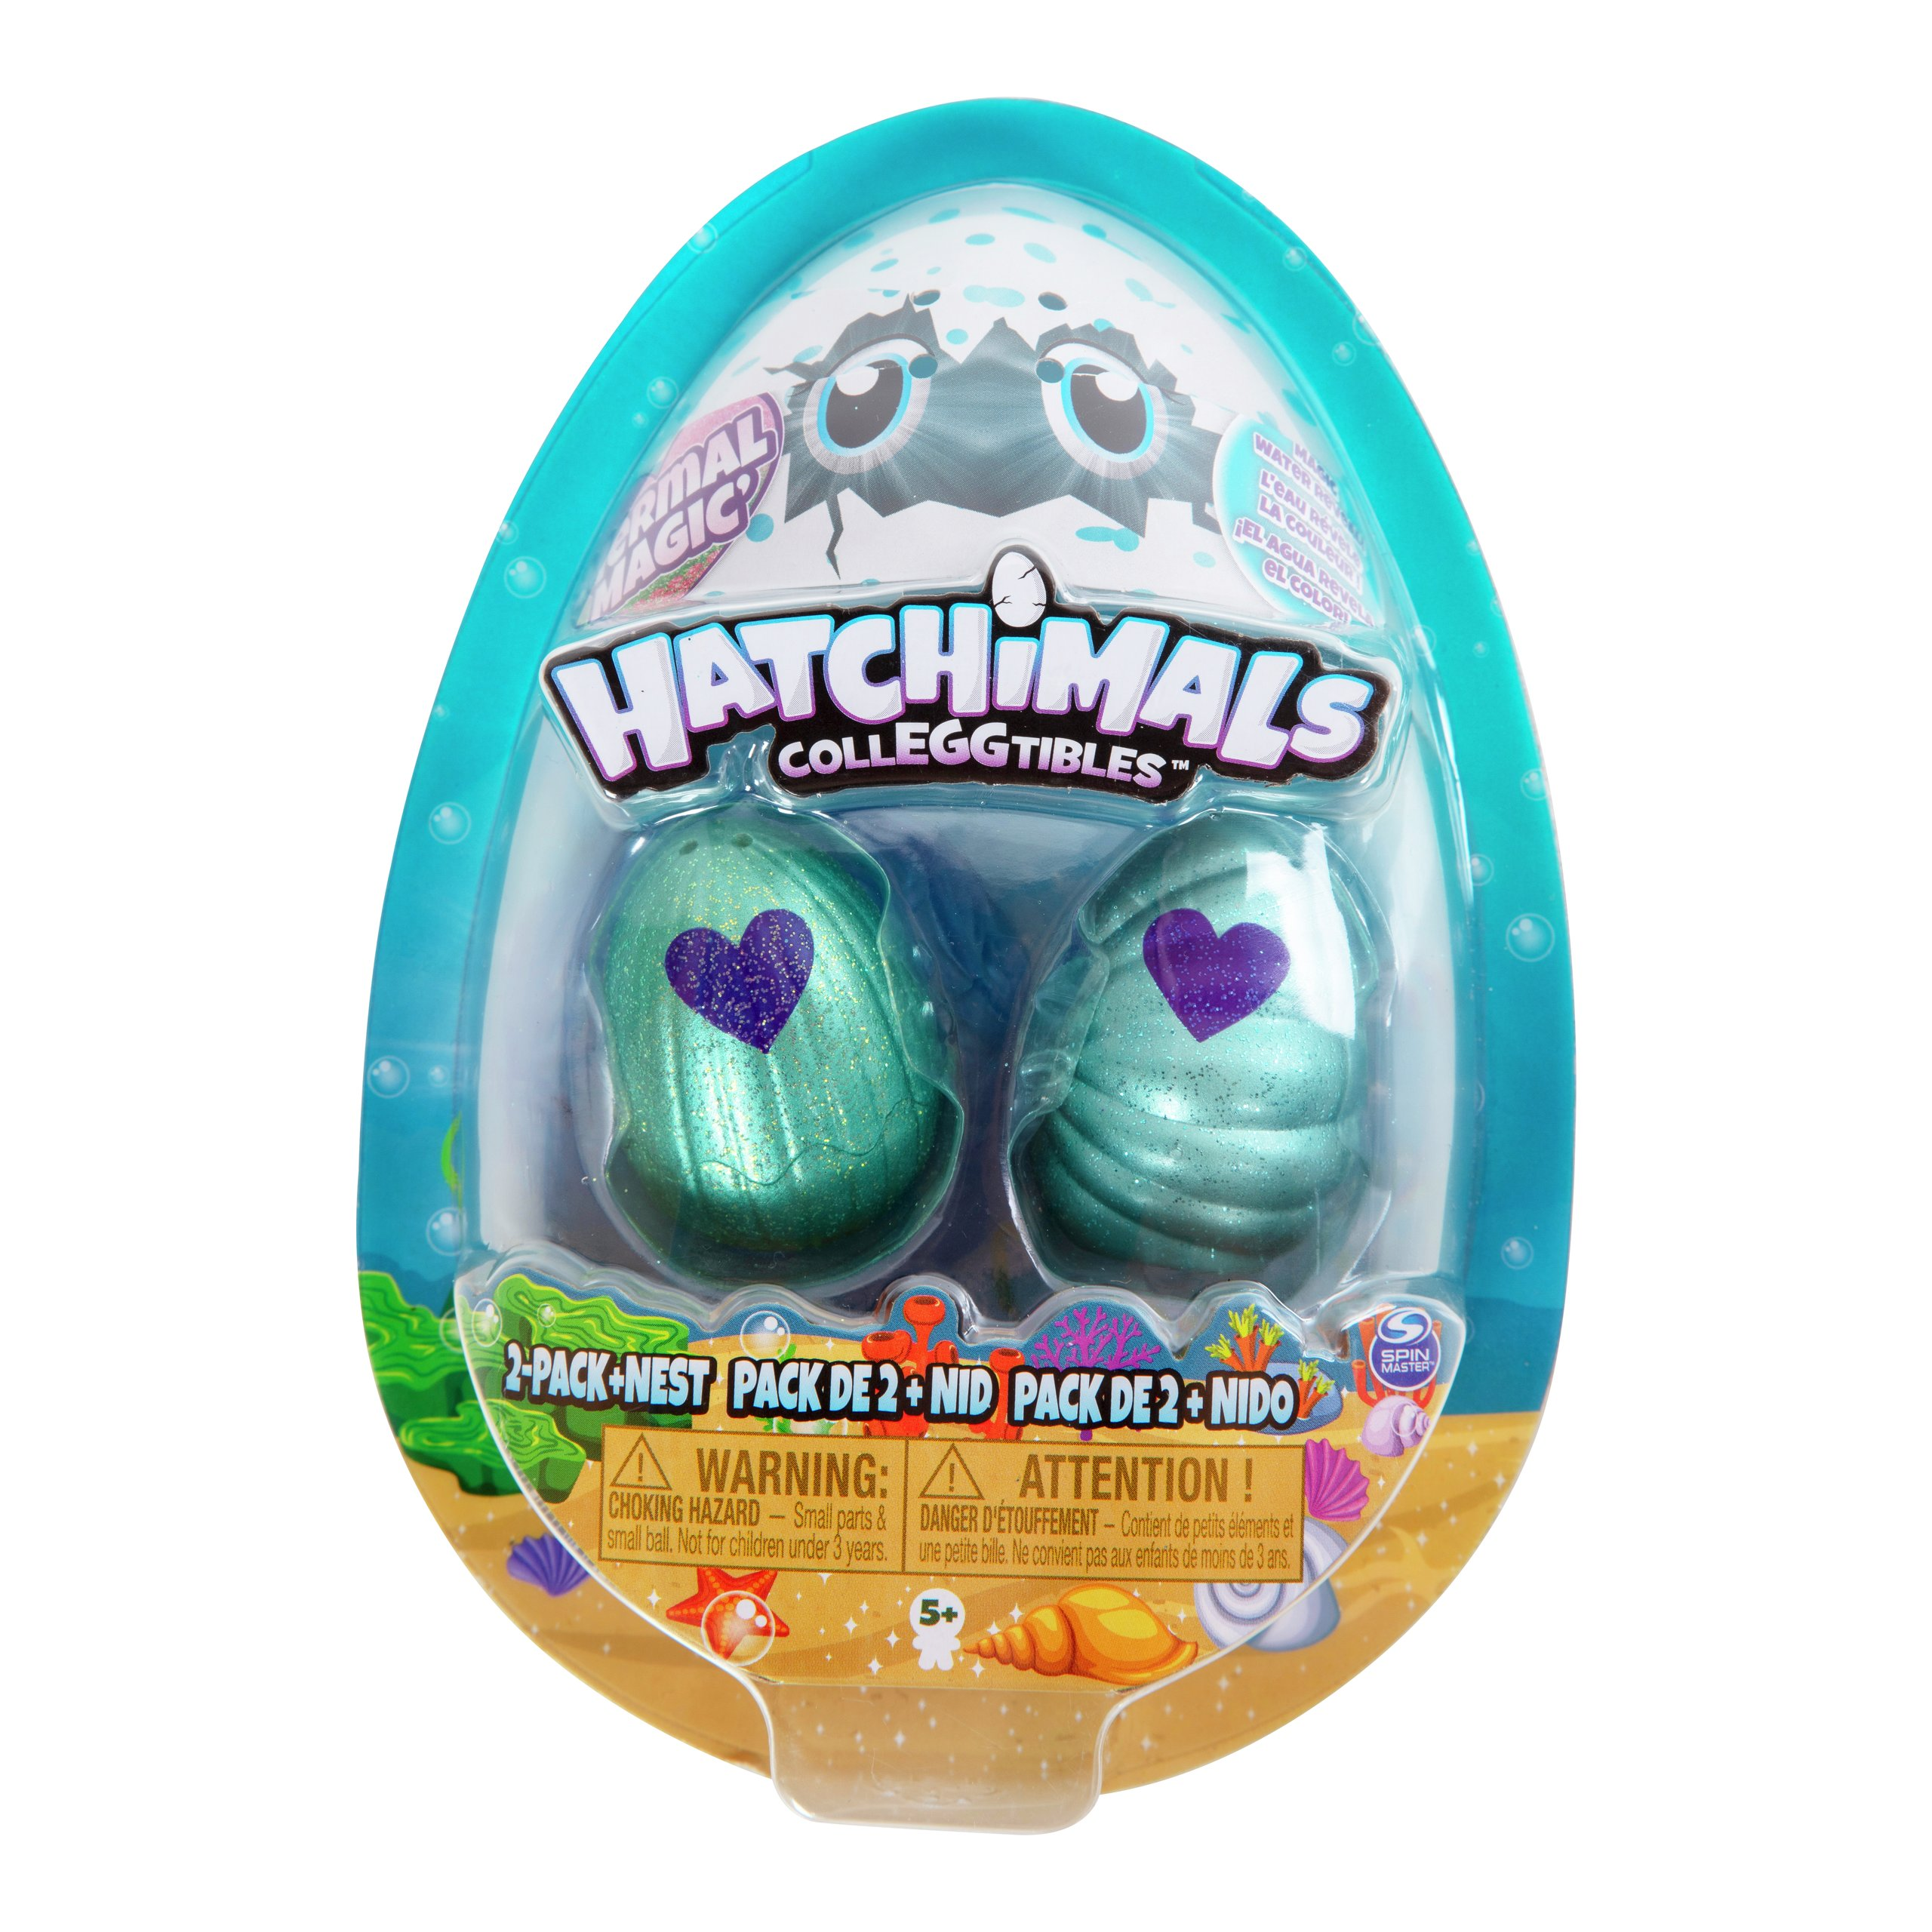 HATCHIMALS COLLEGGTIBLES S5 2PK-100388